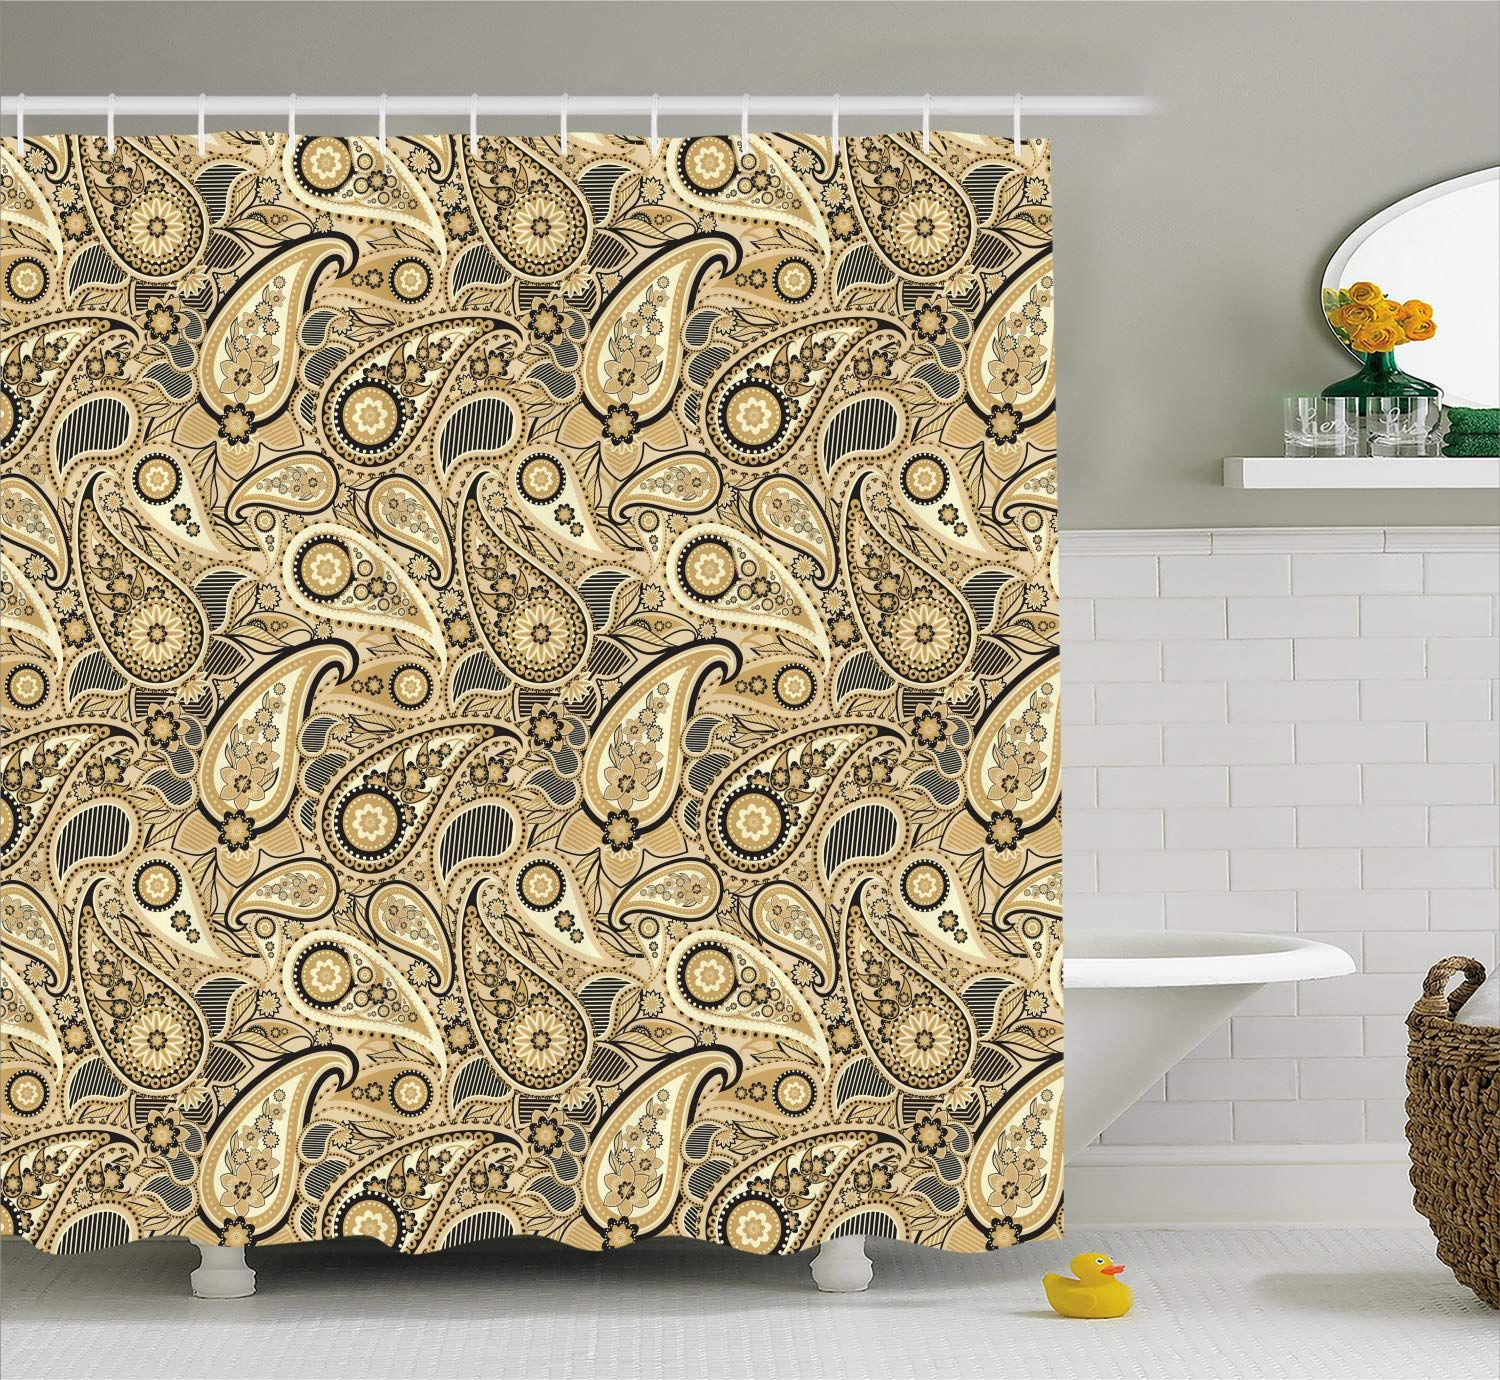 Ambesonne Earth Tones Shower Curtain, Iranian